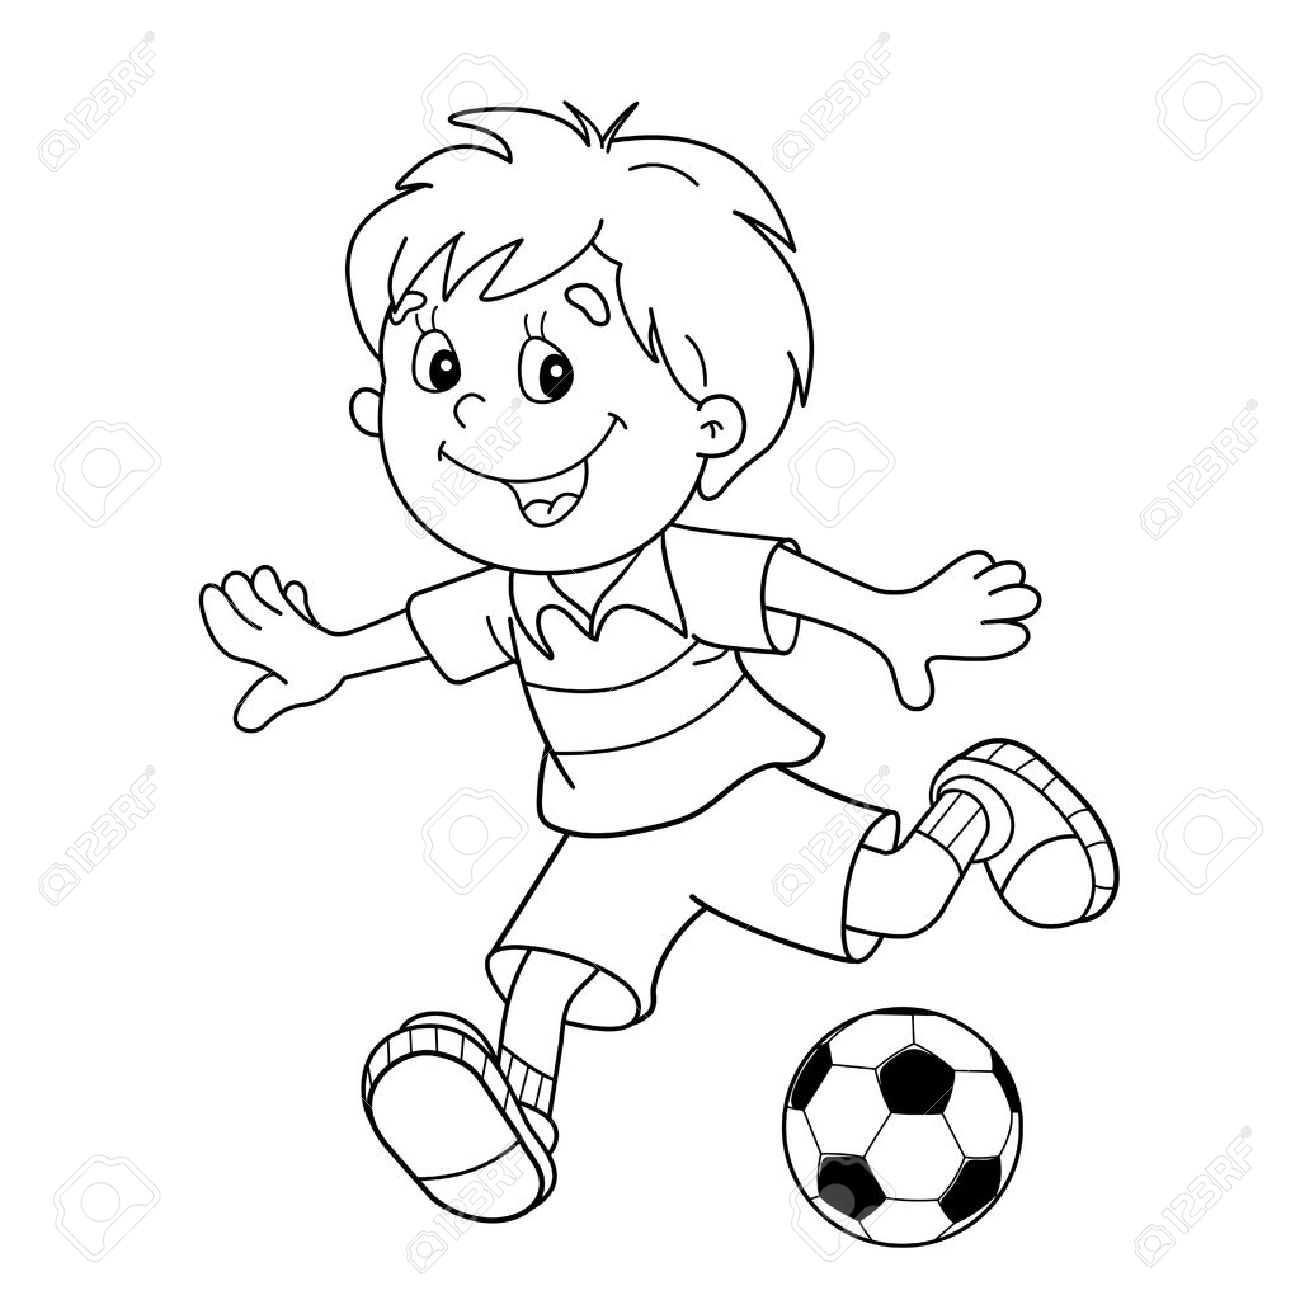 Football Drawing For Kids At Getdrawings